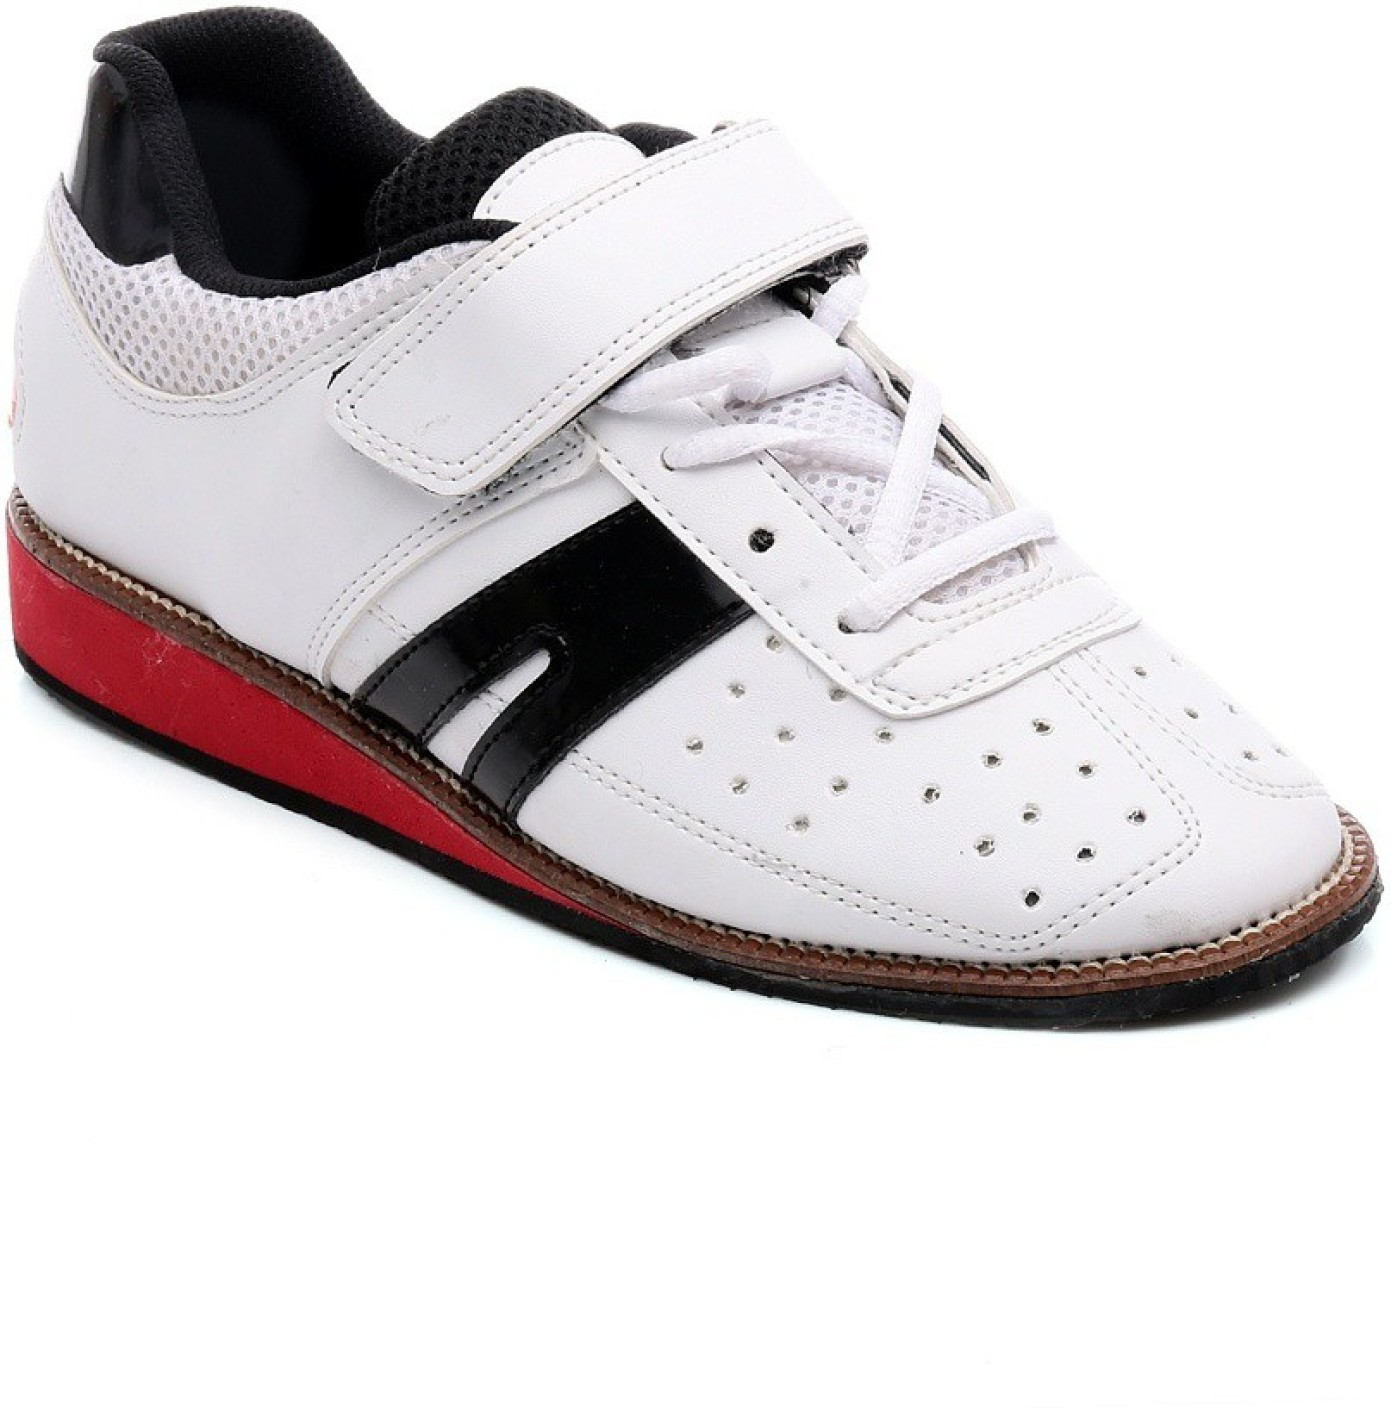 Where To Buy Weightlifting Shoes Uk